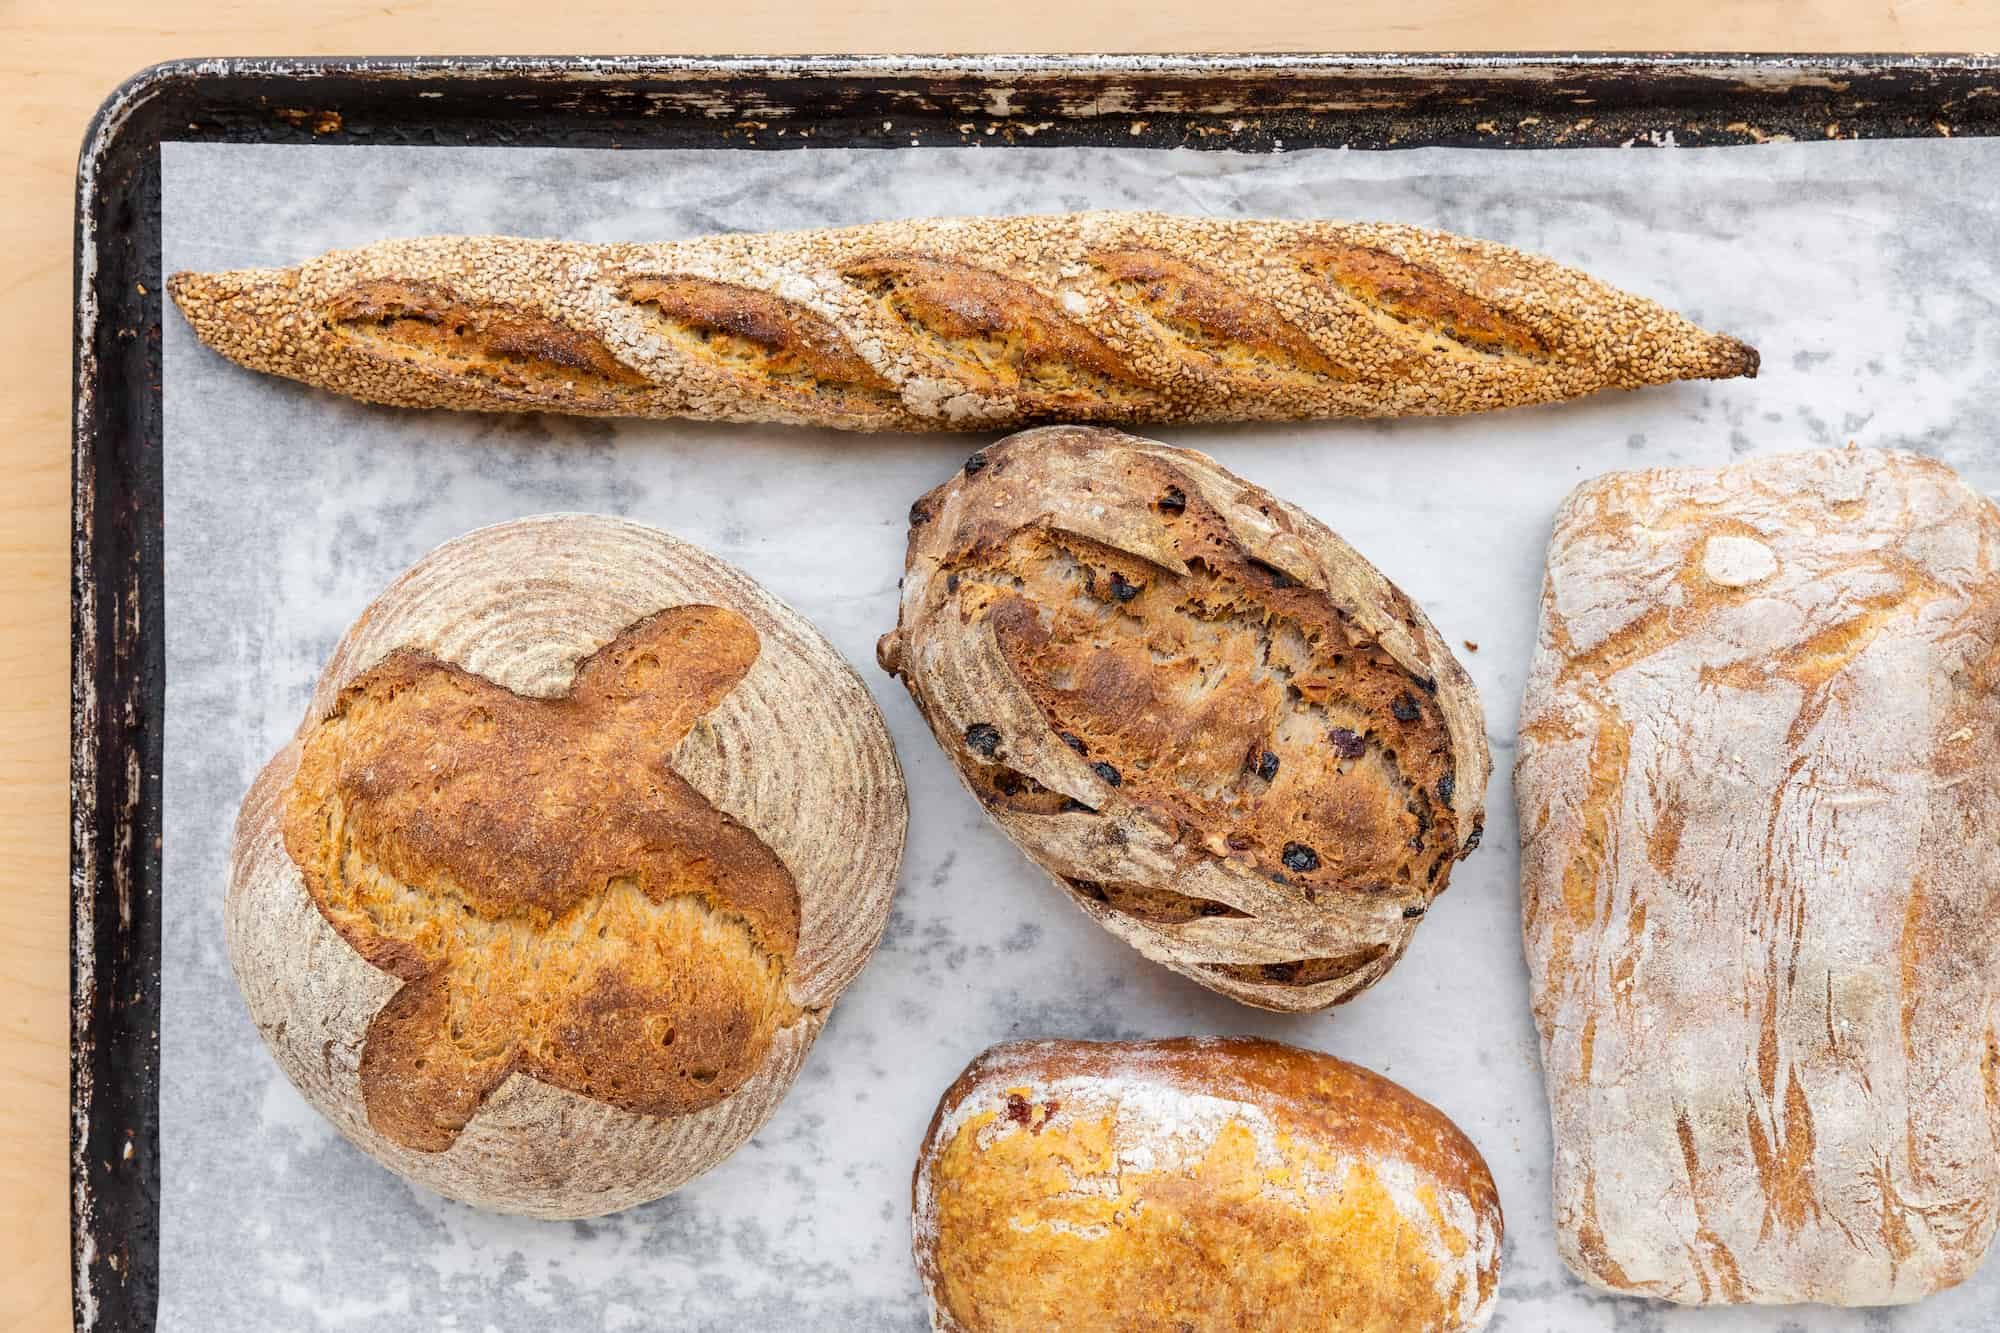 Assortments of Breads from Milo & Olive